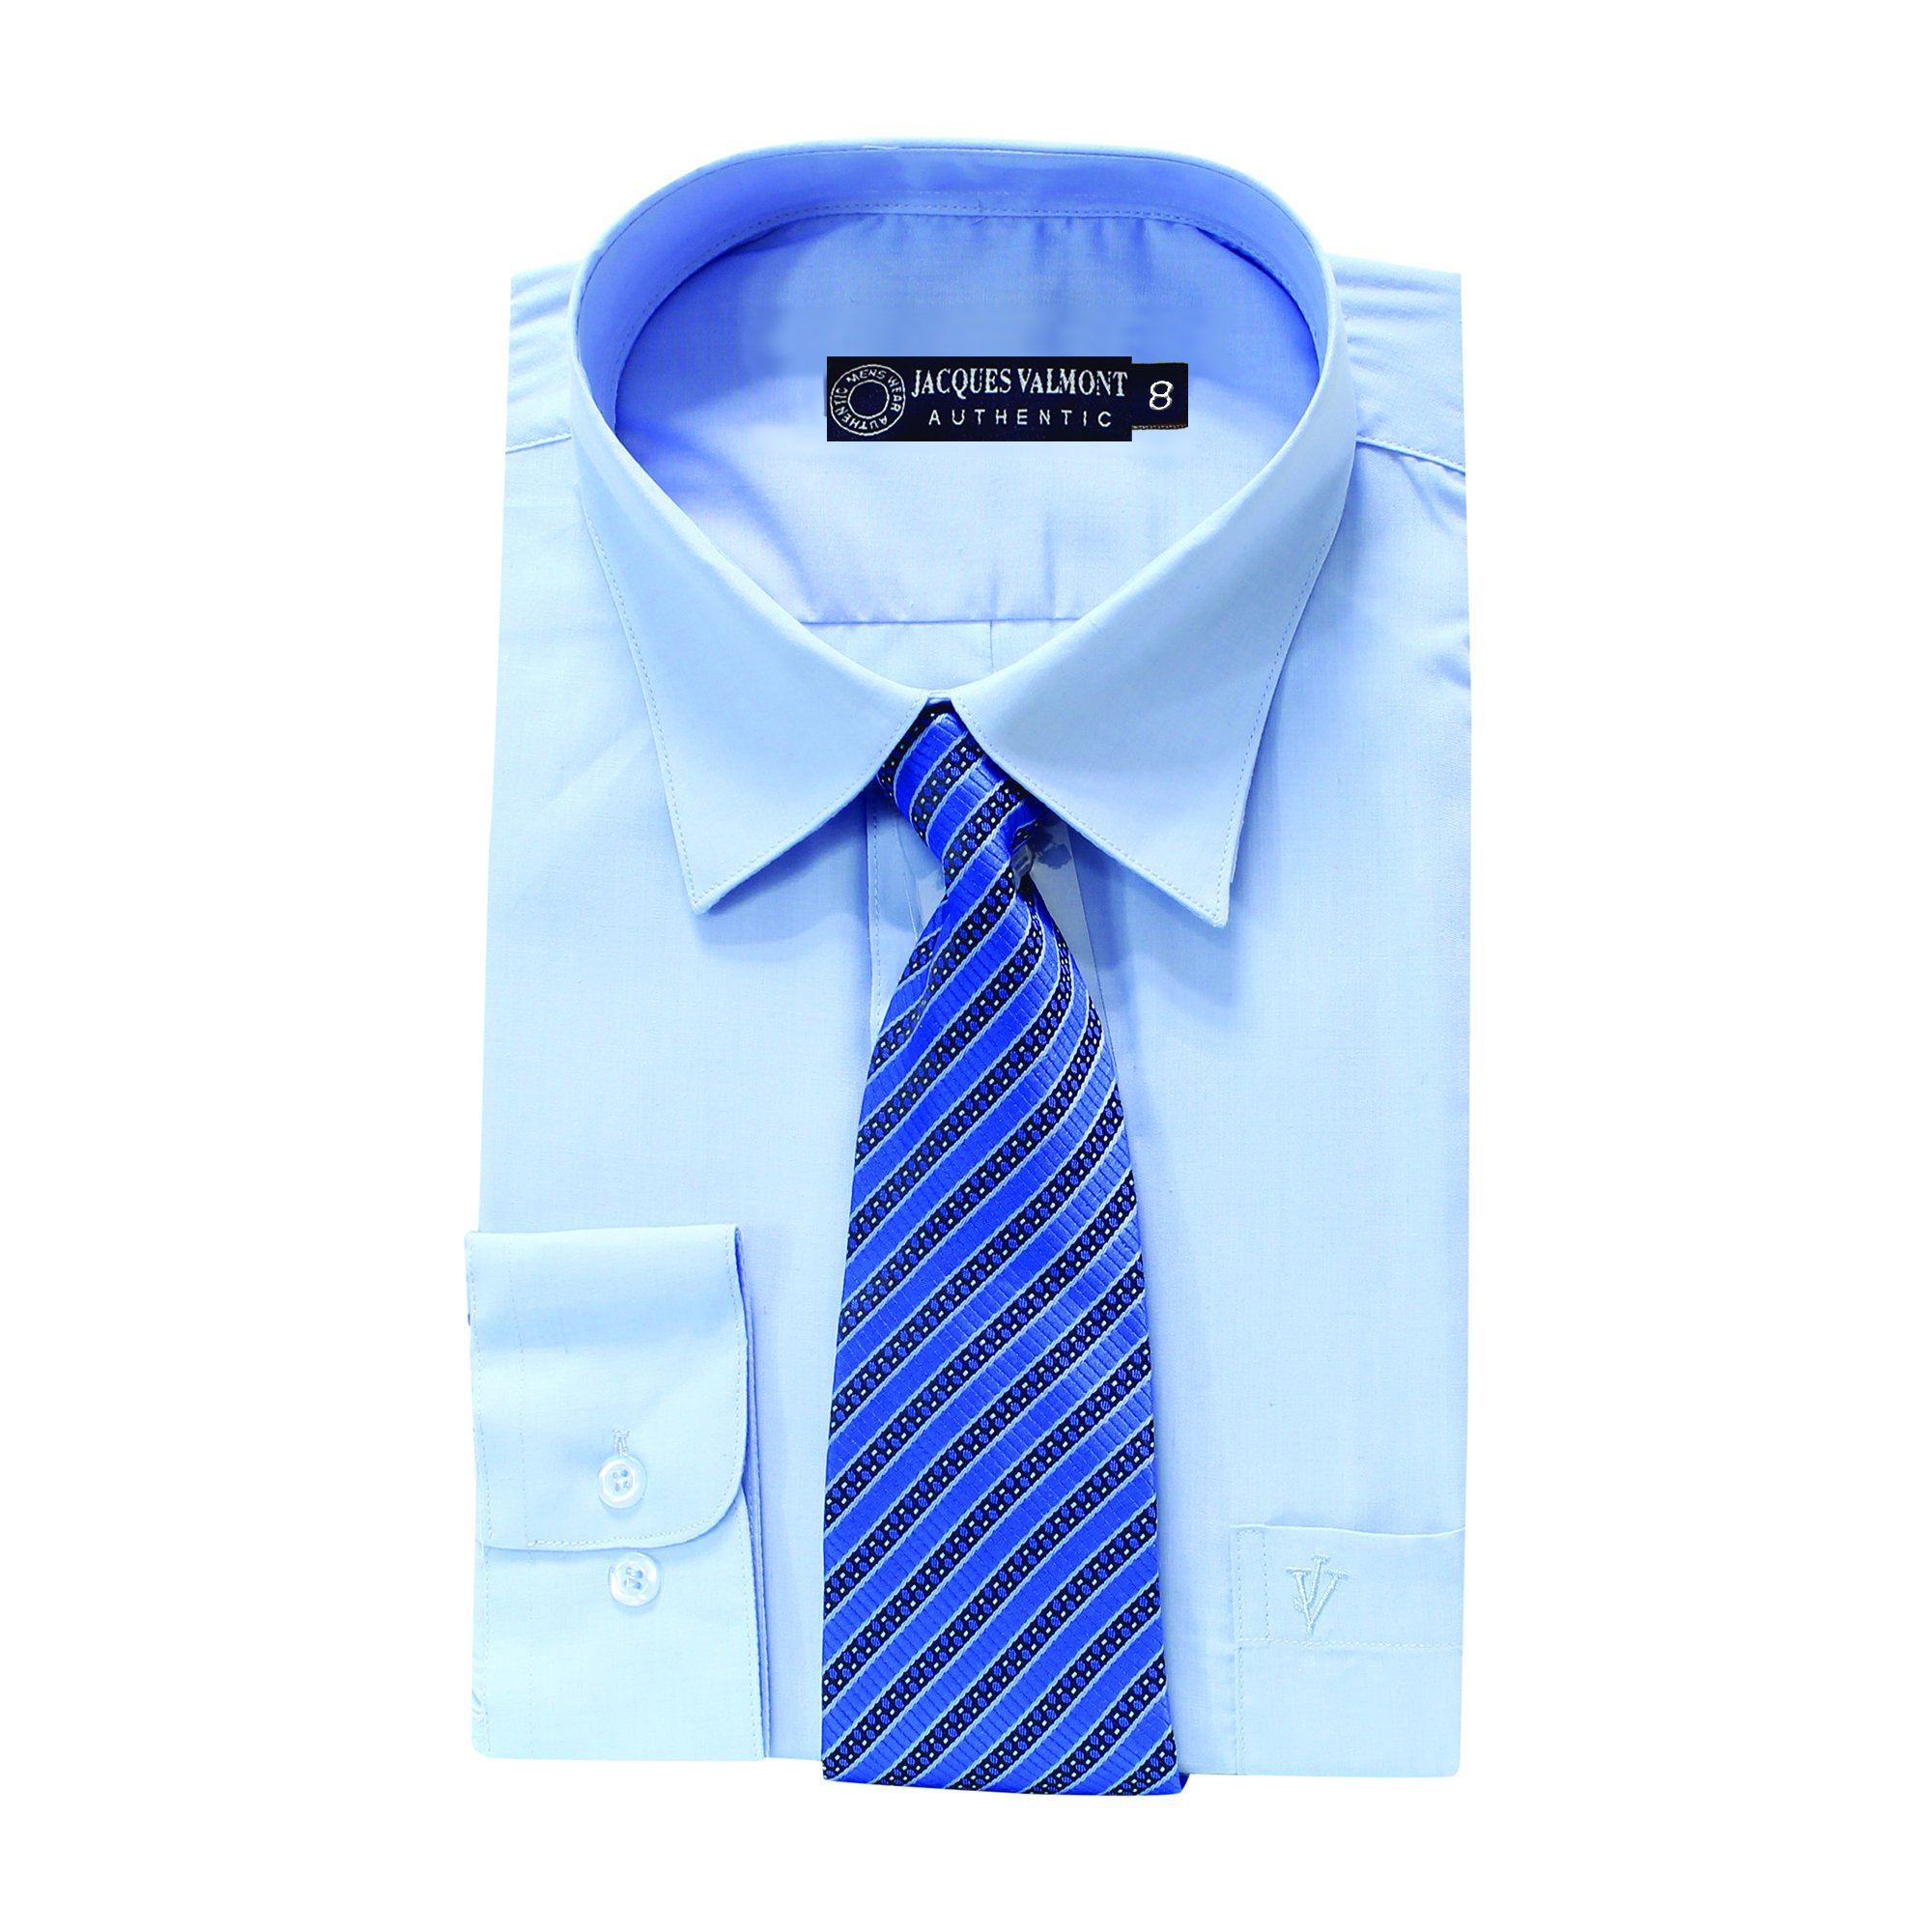 Jacques Valmont - Boy's Long Sleeve Shirt with Tie - Light Blue (Size 8)